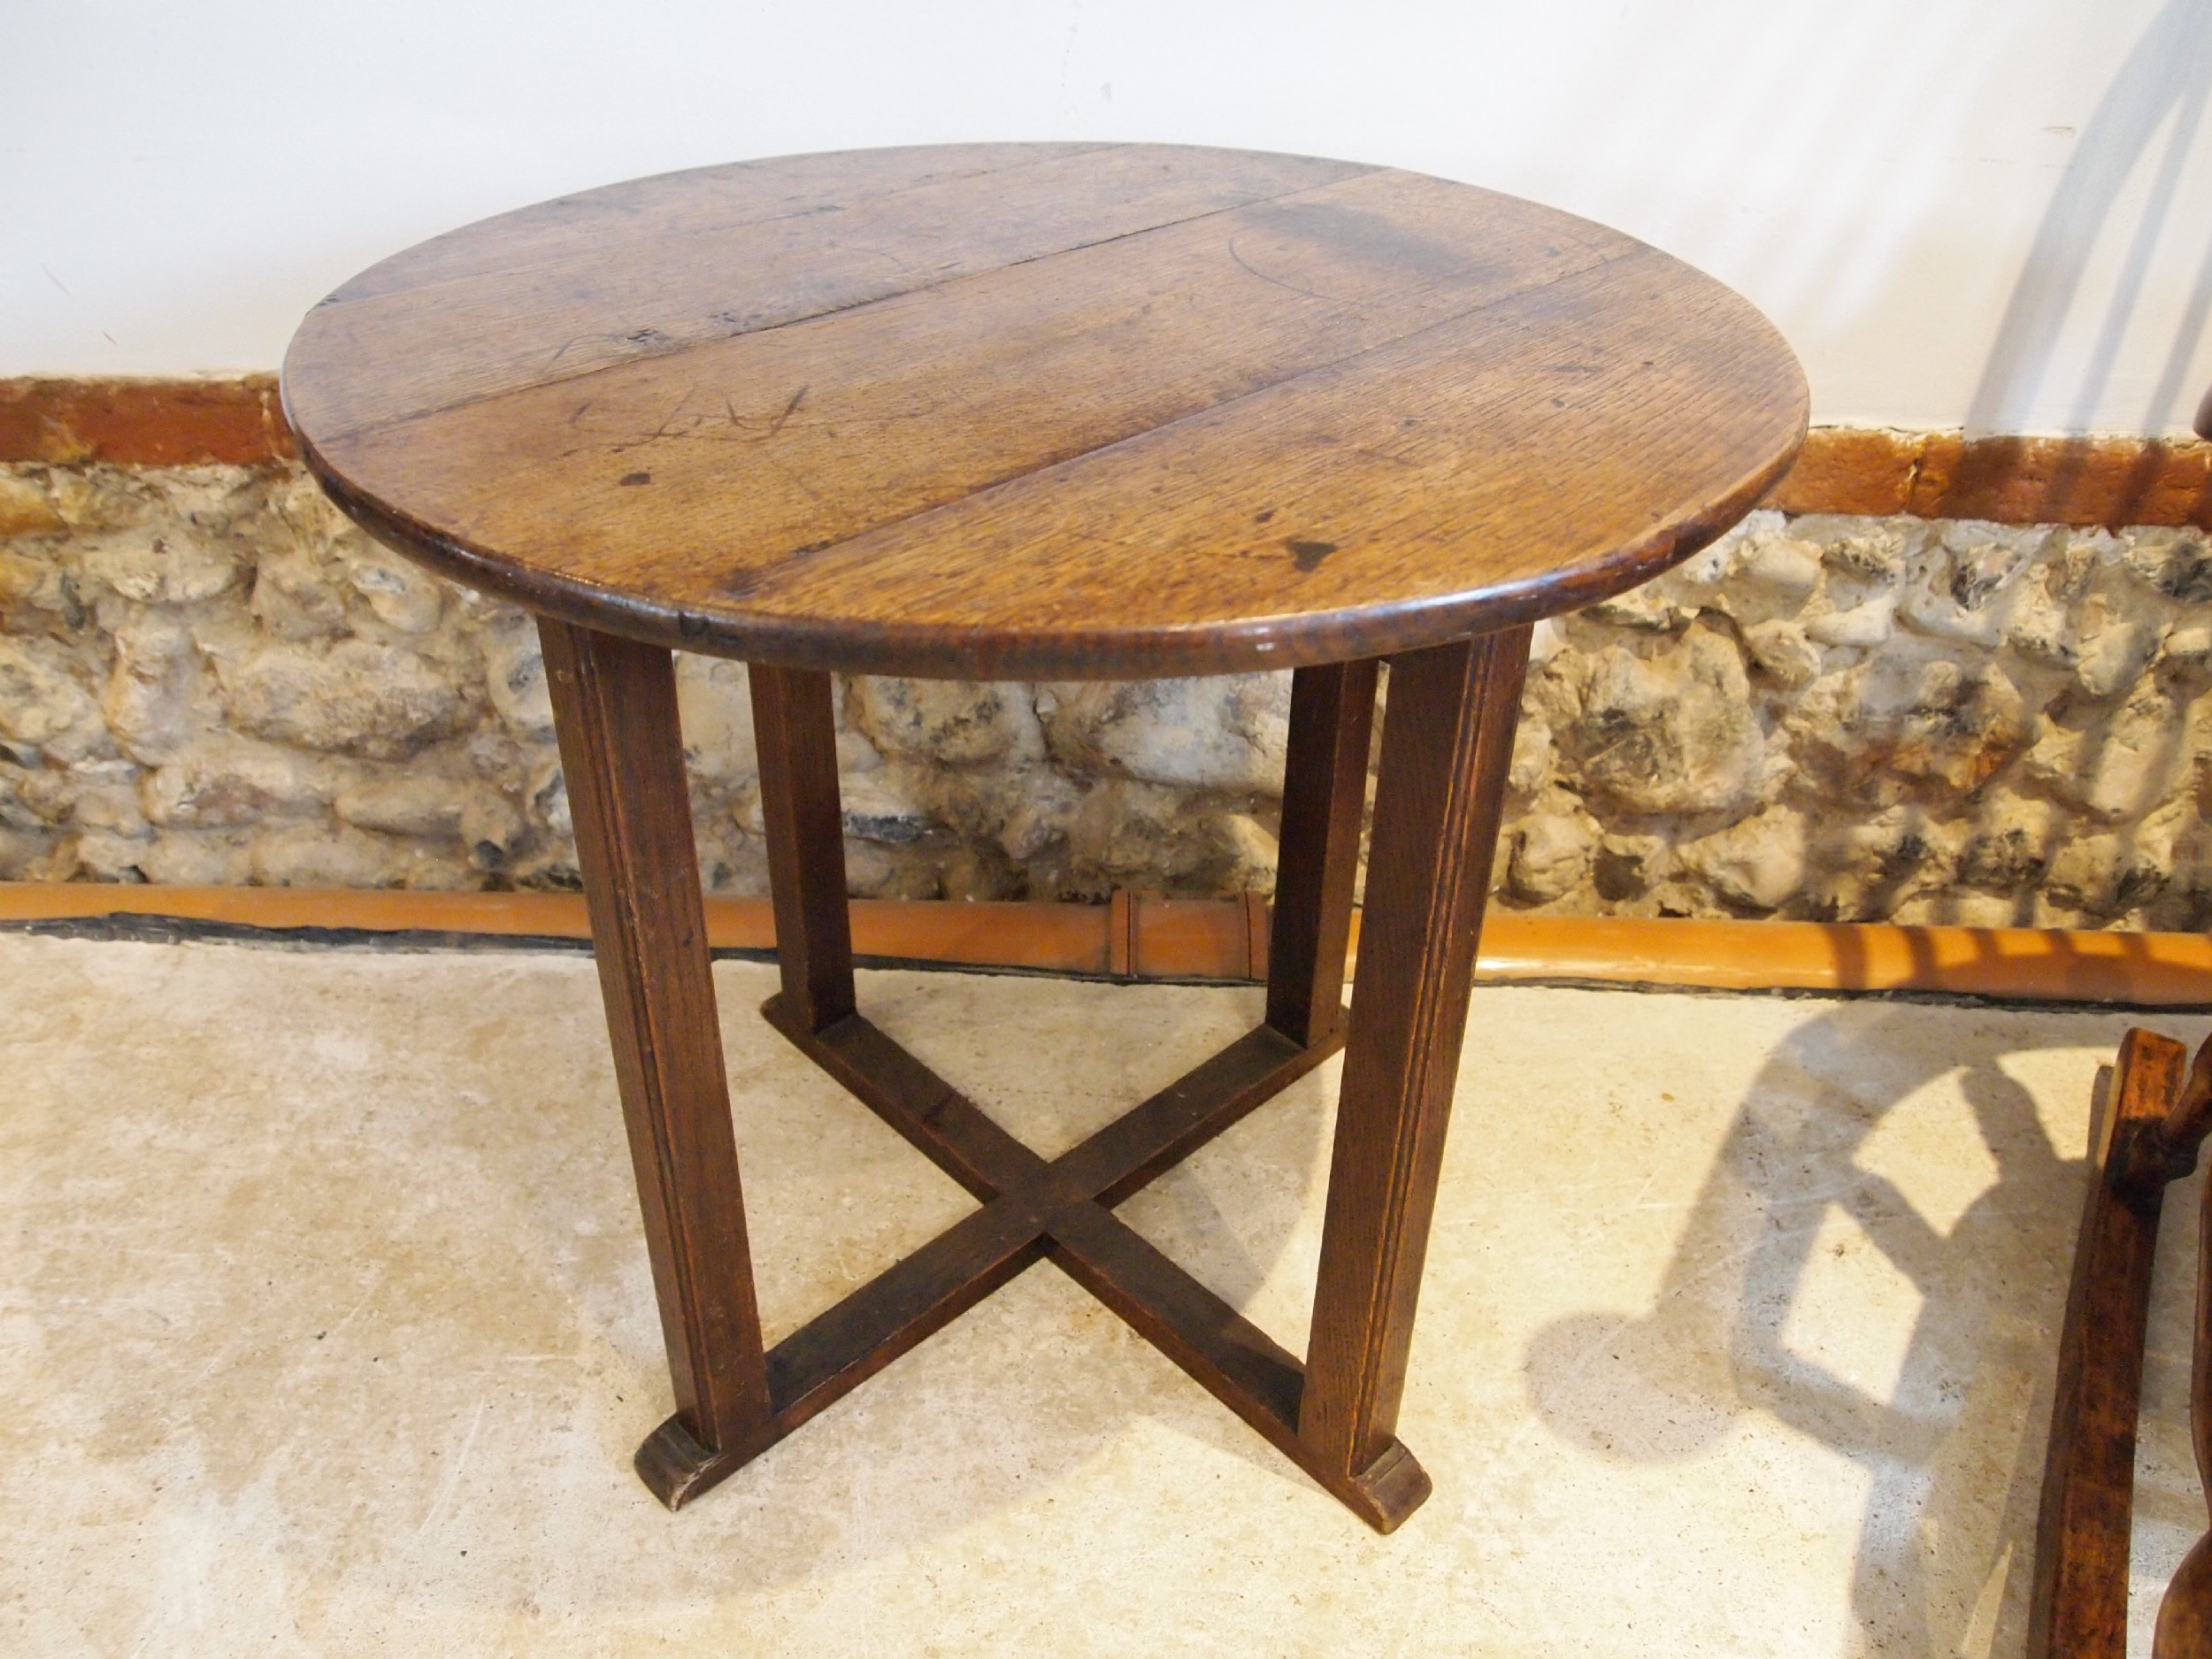 table cricket table victorian oak side hall lamp c1840